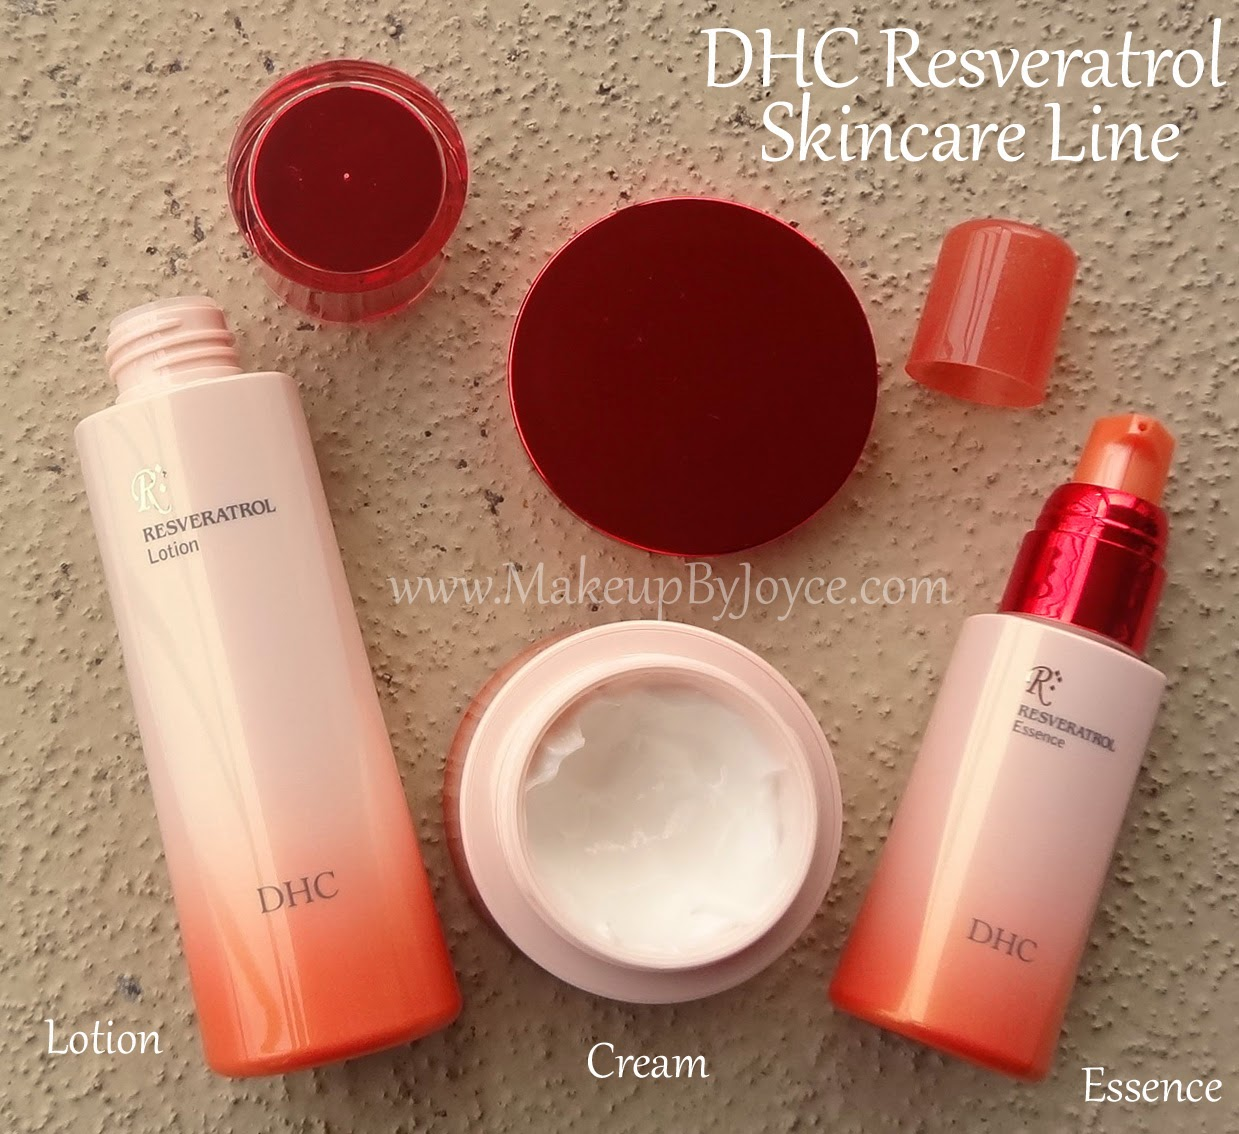 DHC Resveratrol Skincare Line Swatches